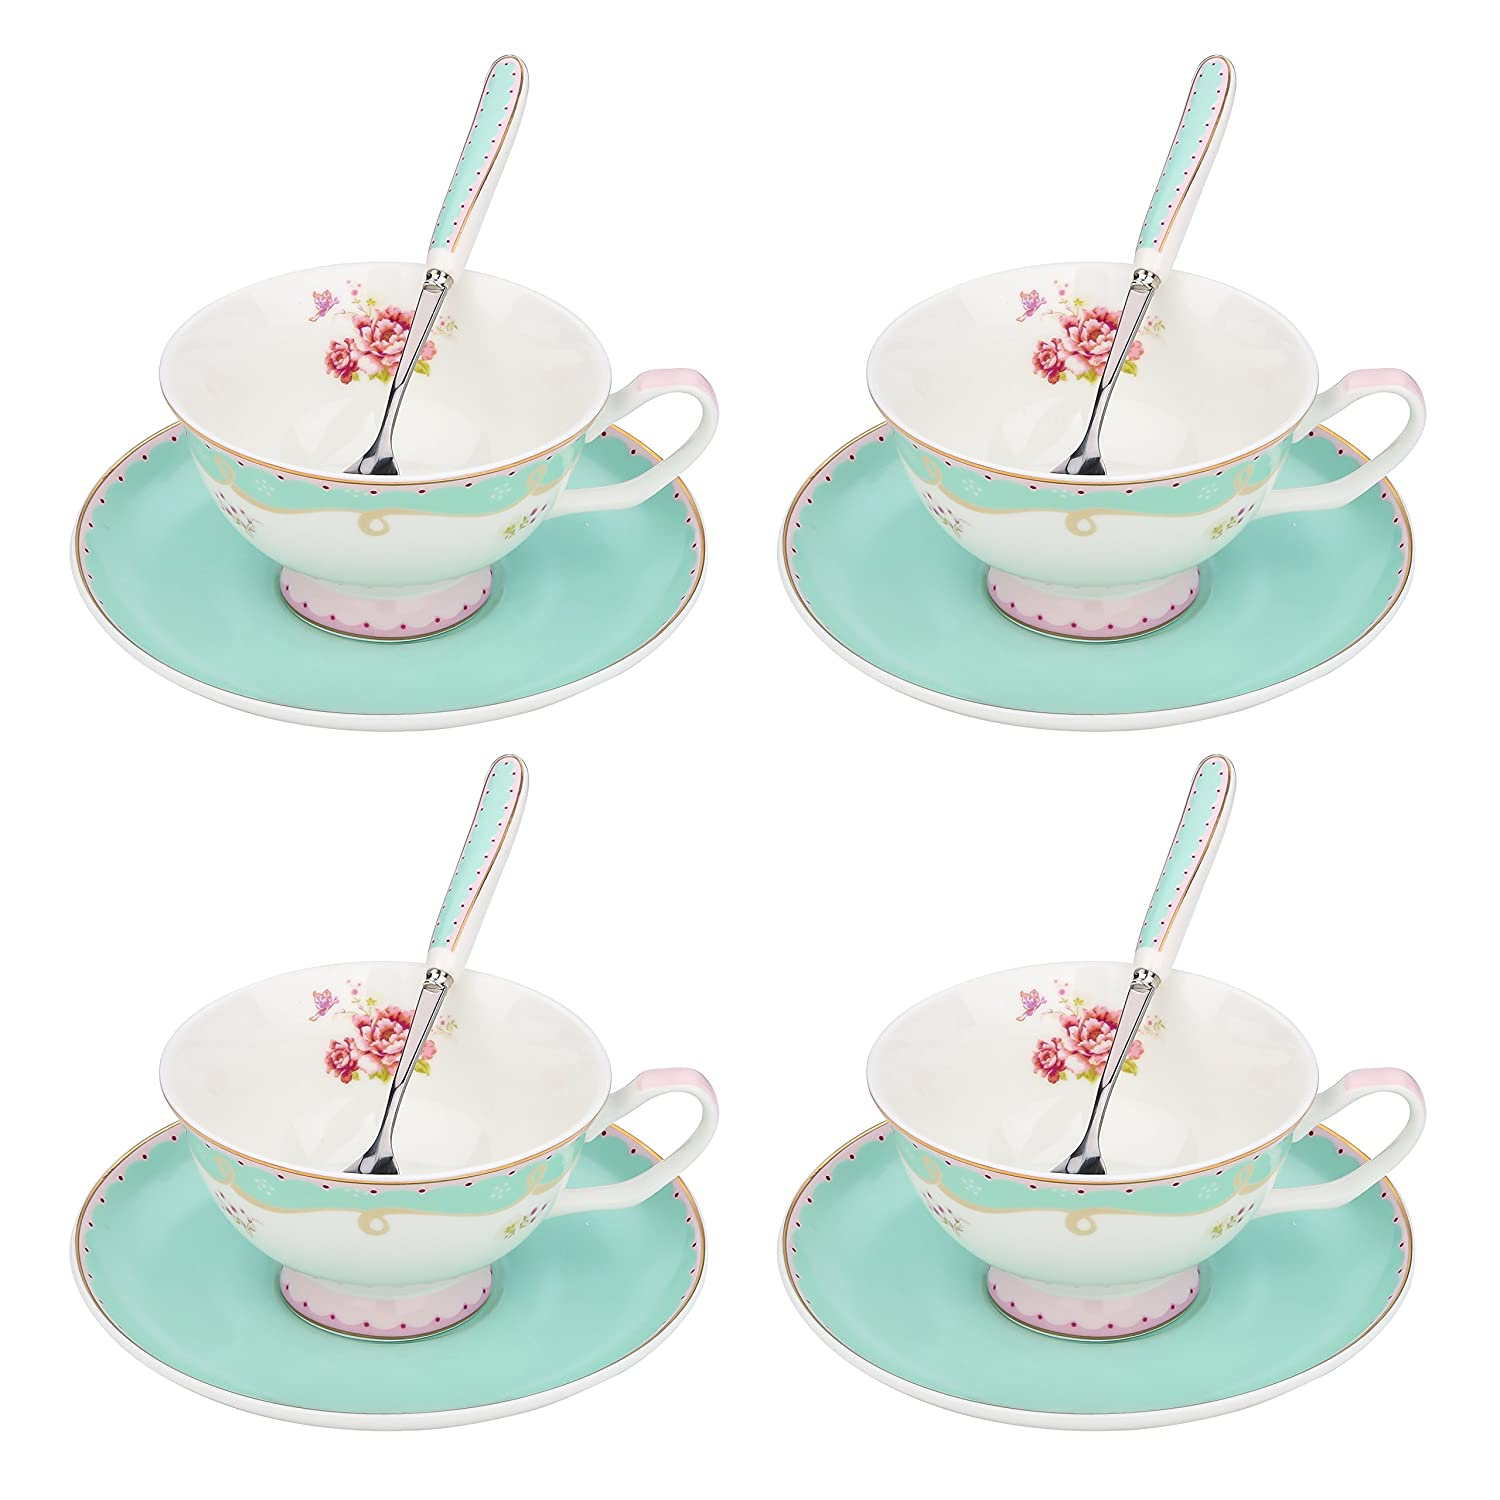 ARTVIGOR Tea Set New Bone China 6.8 Ounce / 200 Milliliter Espresso Coffee Cups with Matching Saucers, 37x10.5x35.5cm, Light Green Coffee and Tea Cup Set